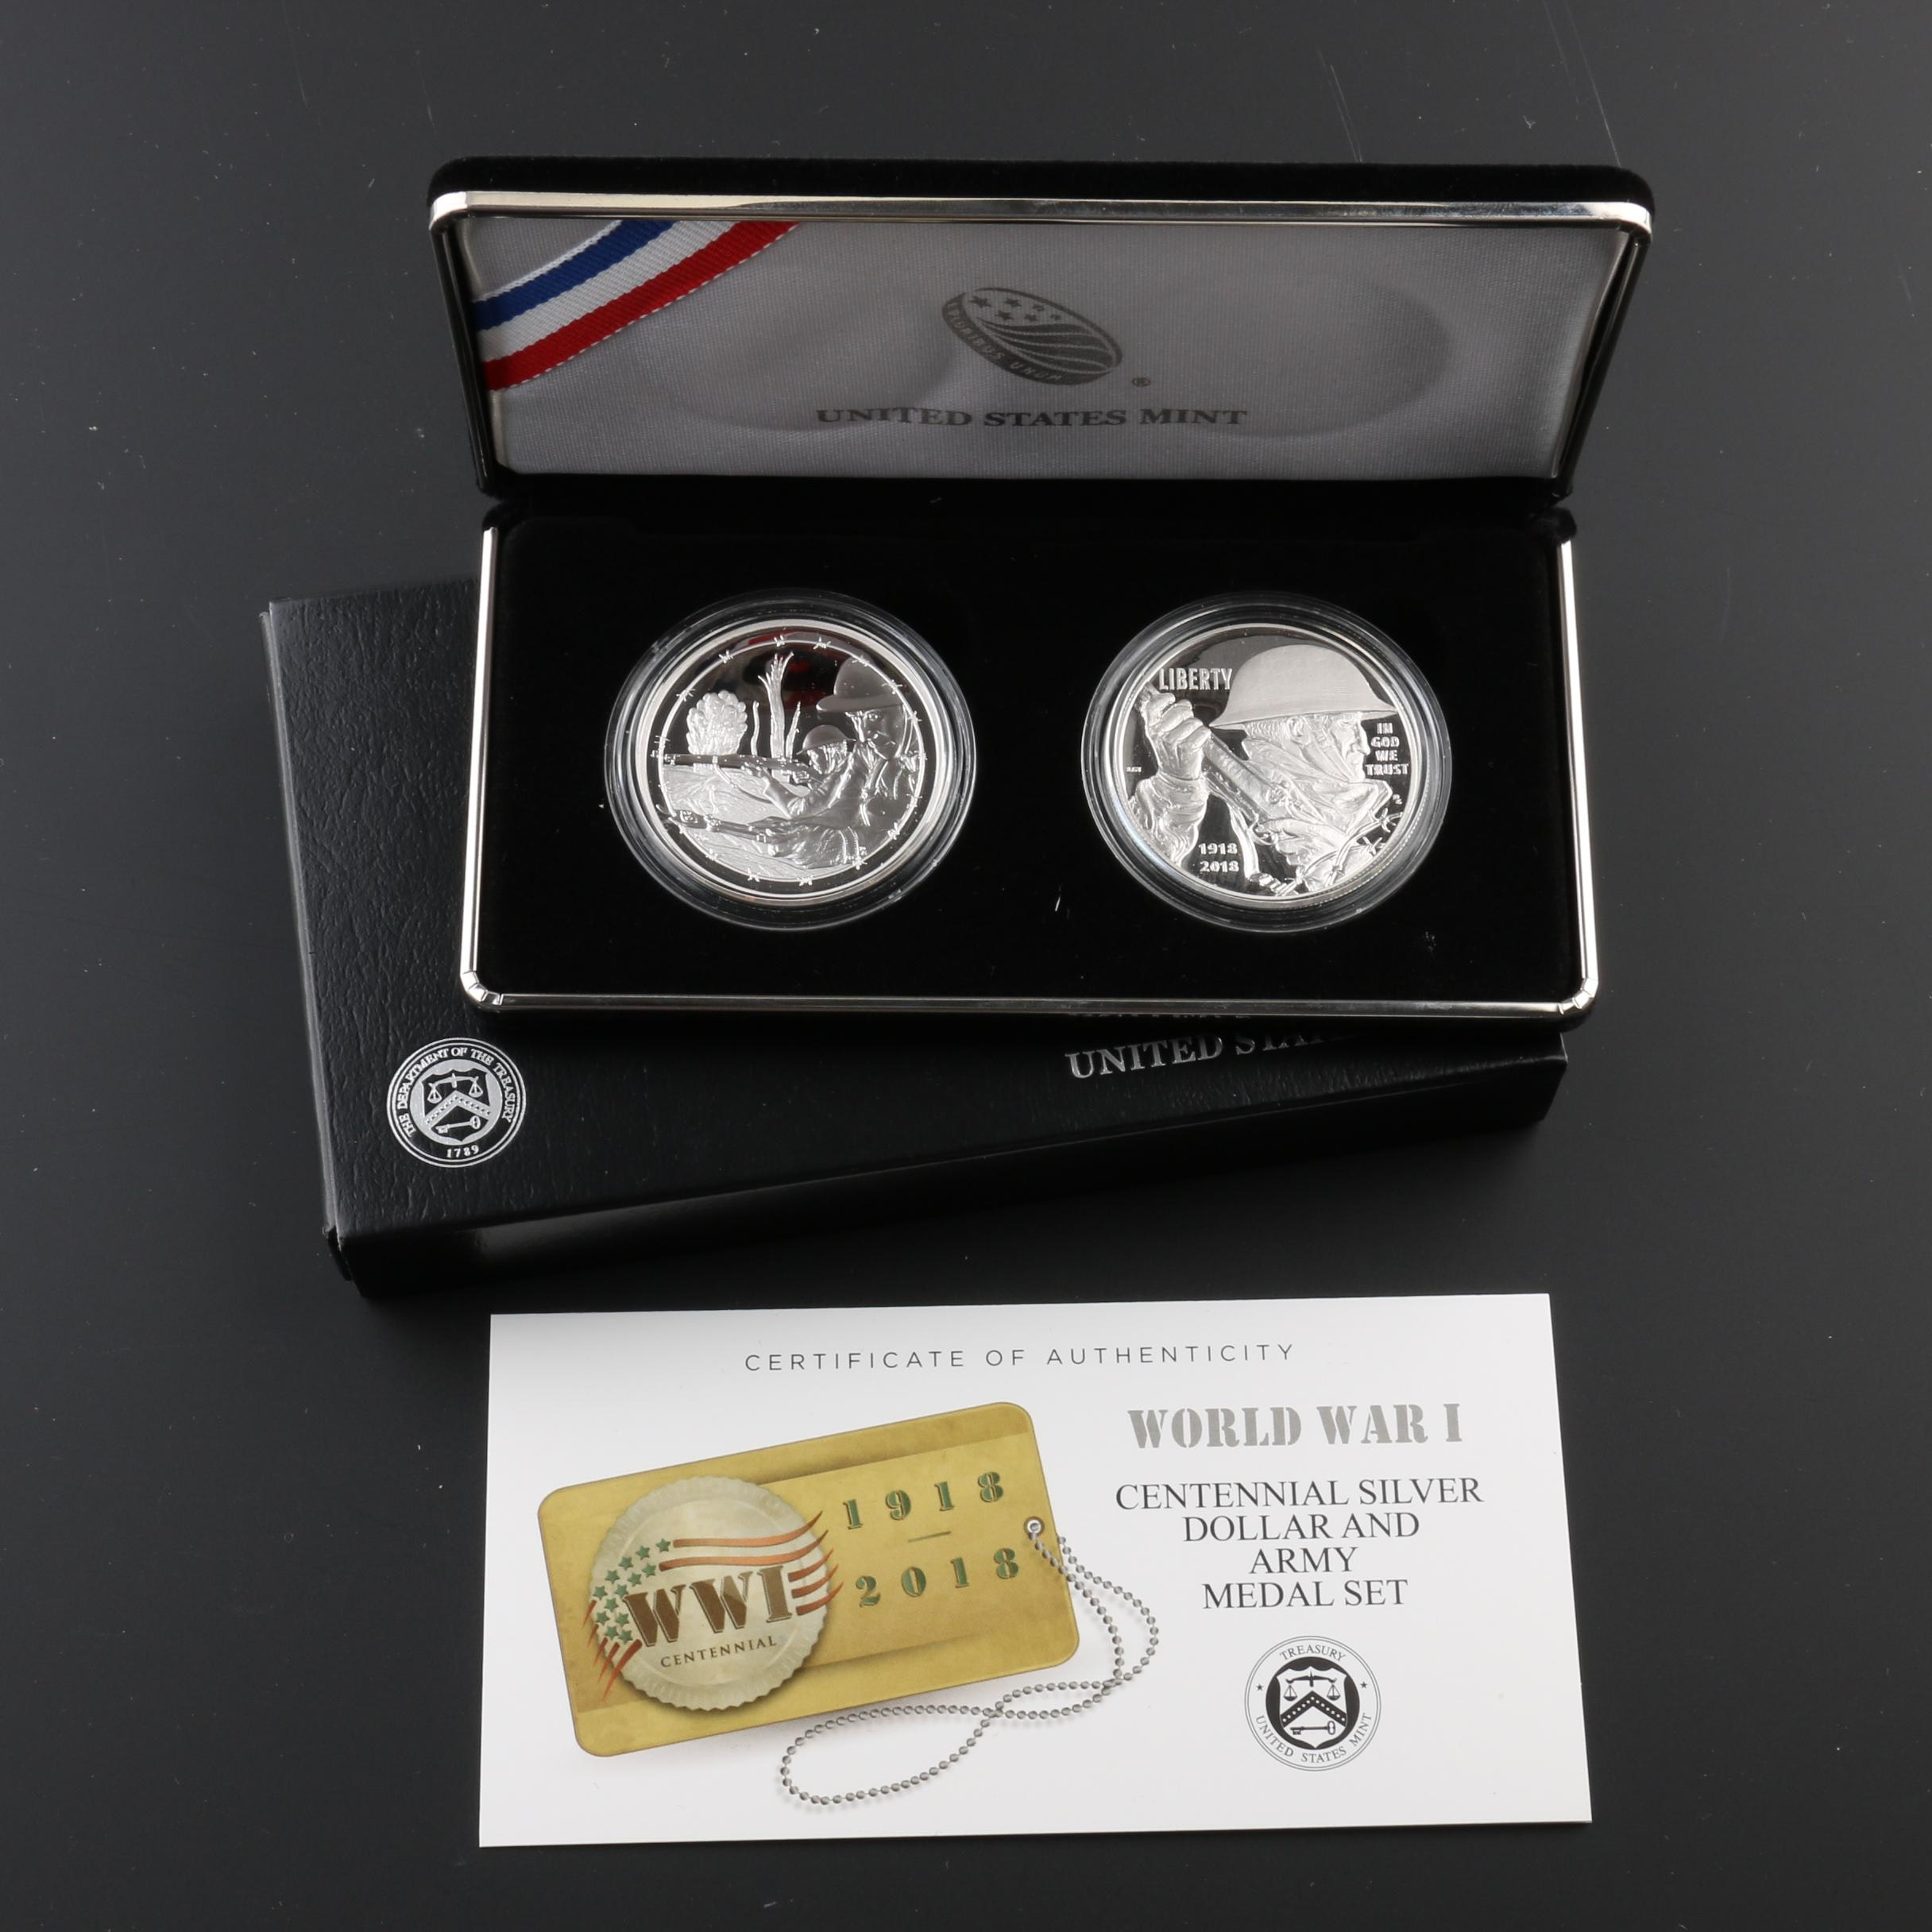 2018 World War I Centennial Silver Dollar and Army Medal Proof Set